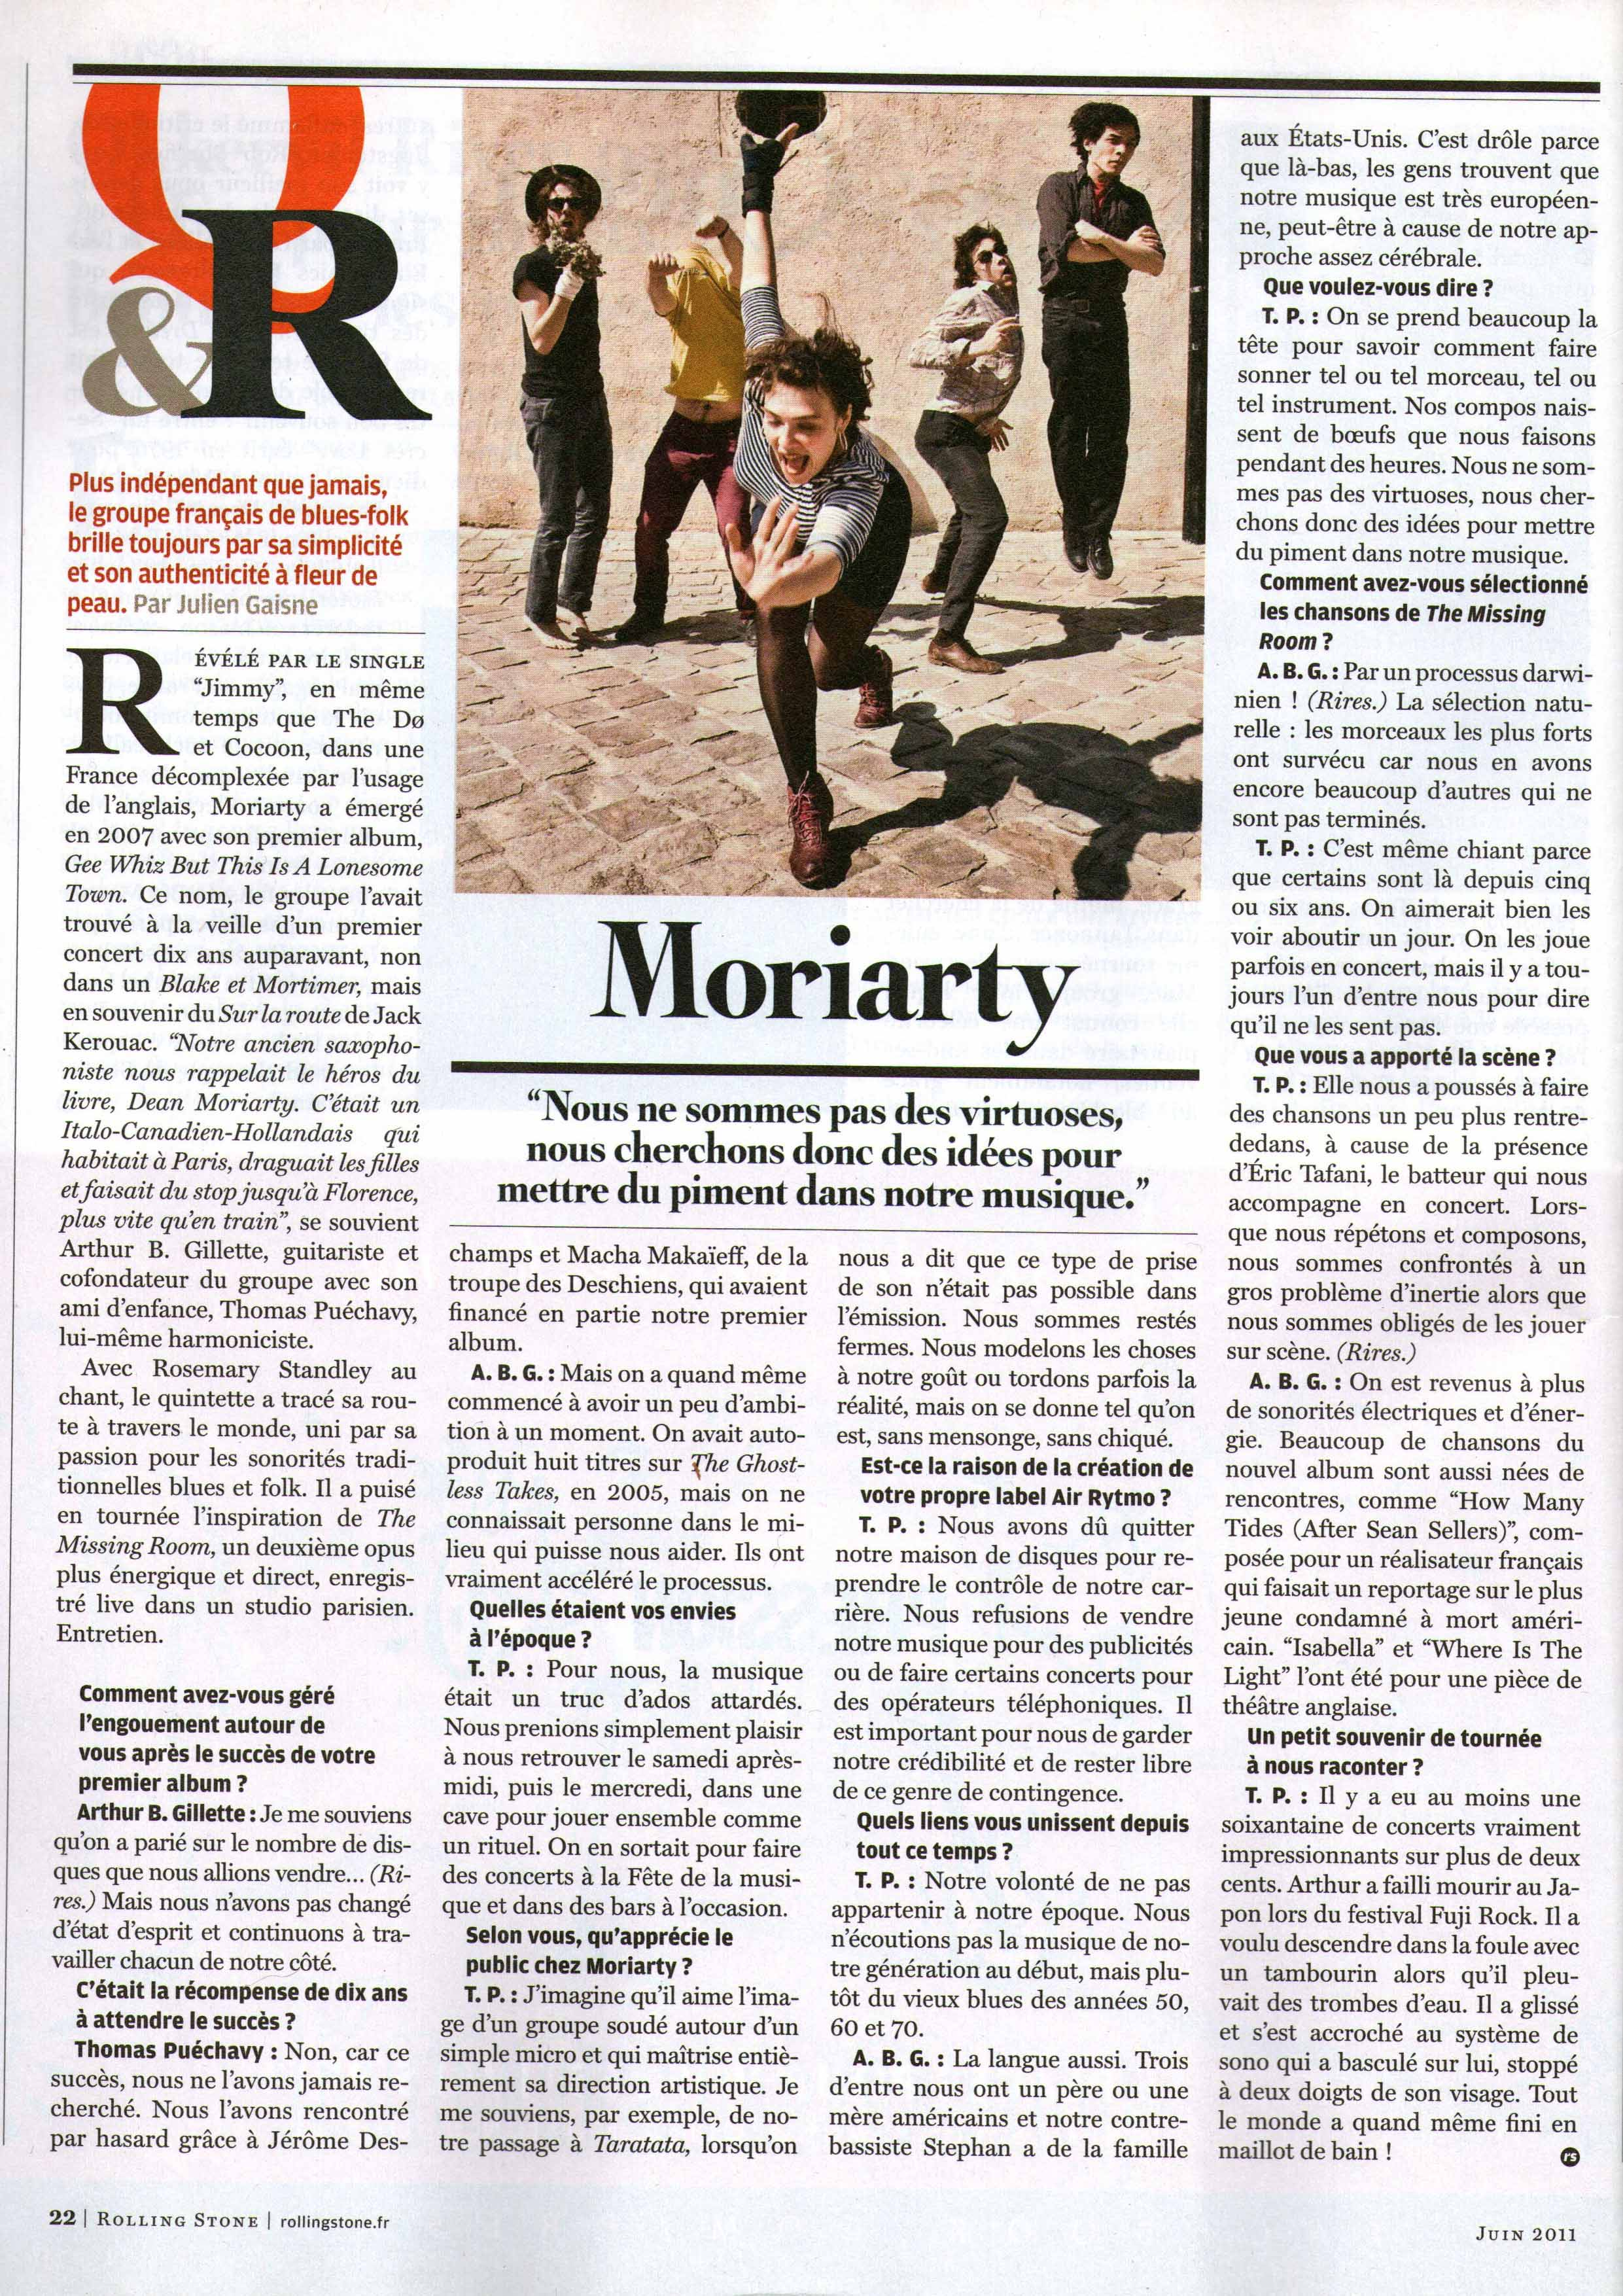 Moriarty (Rolling Stone France)